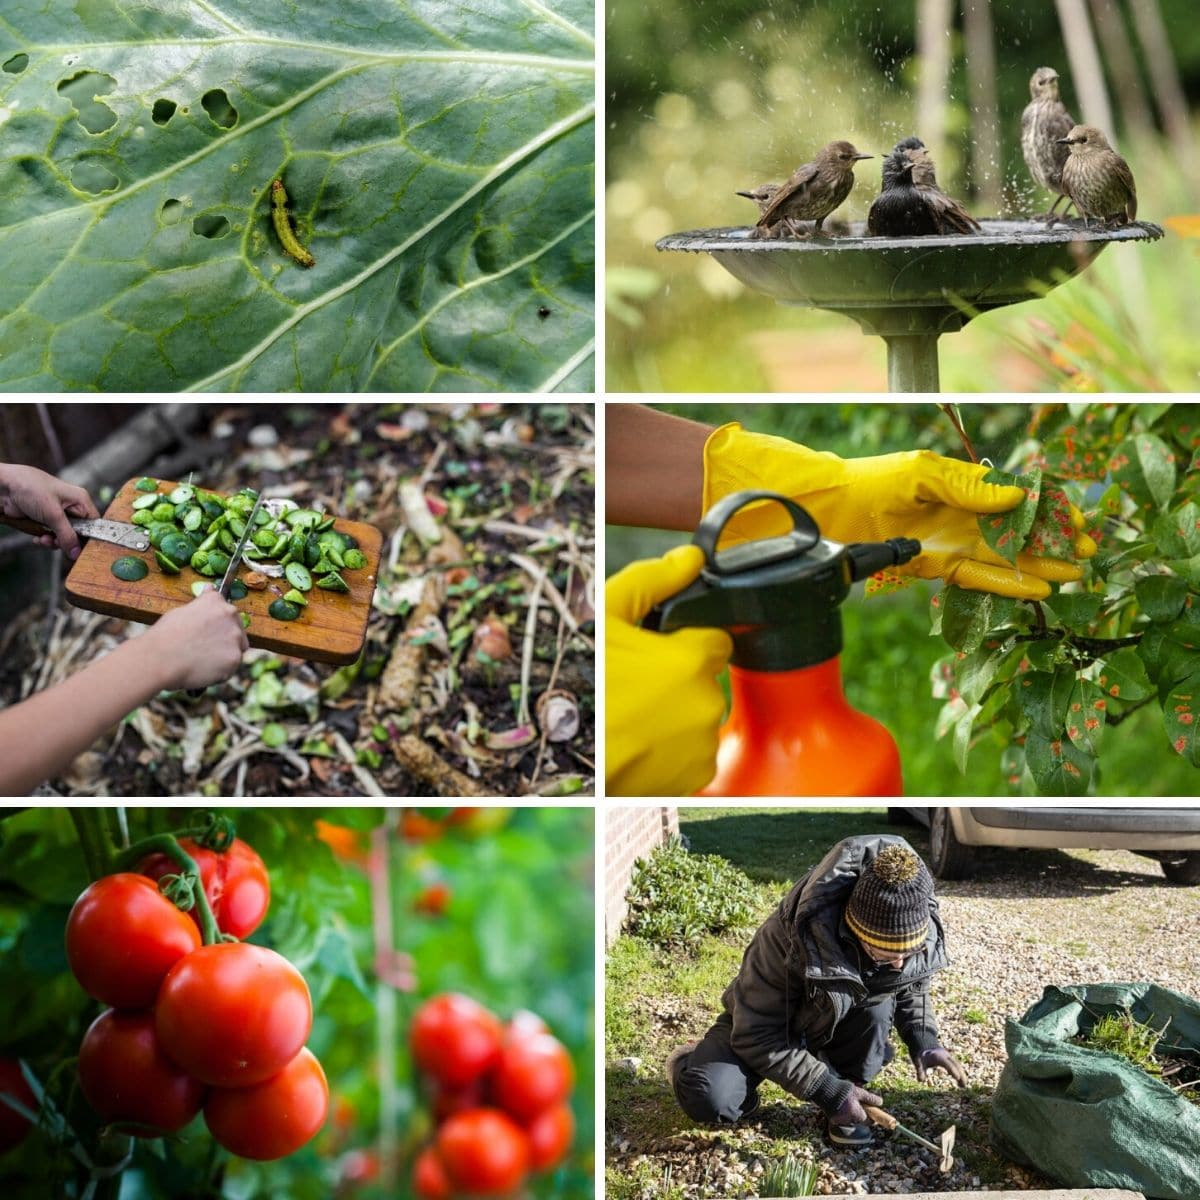 Collage photo featuring various uses for baking soda in the garden from the post content.